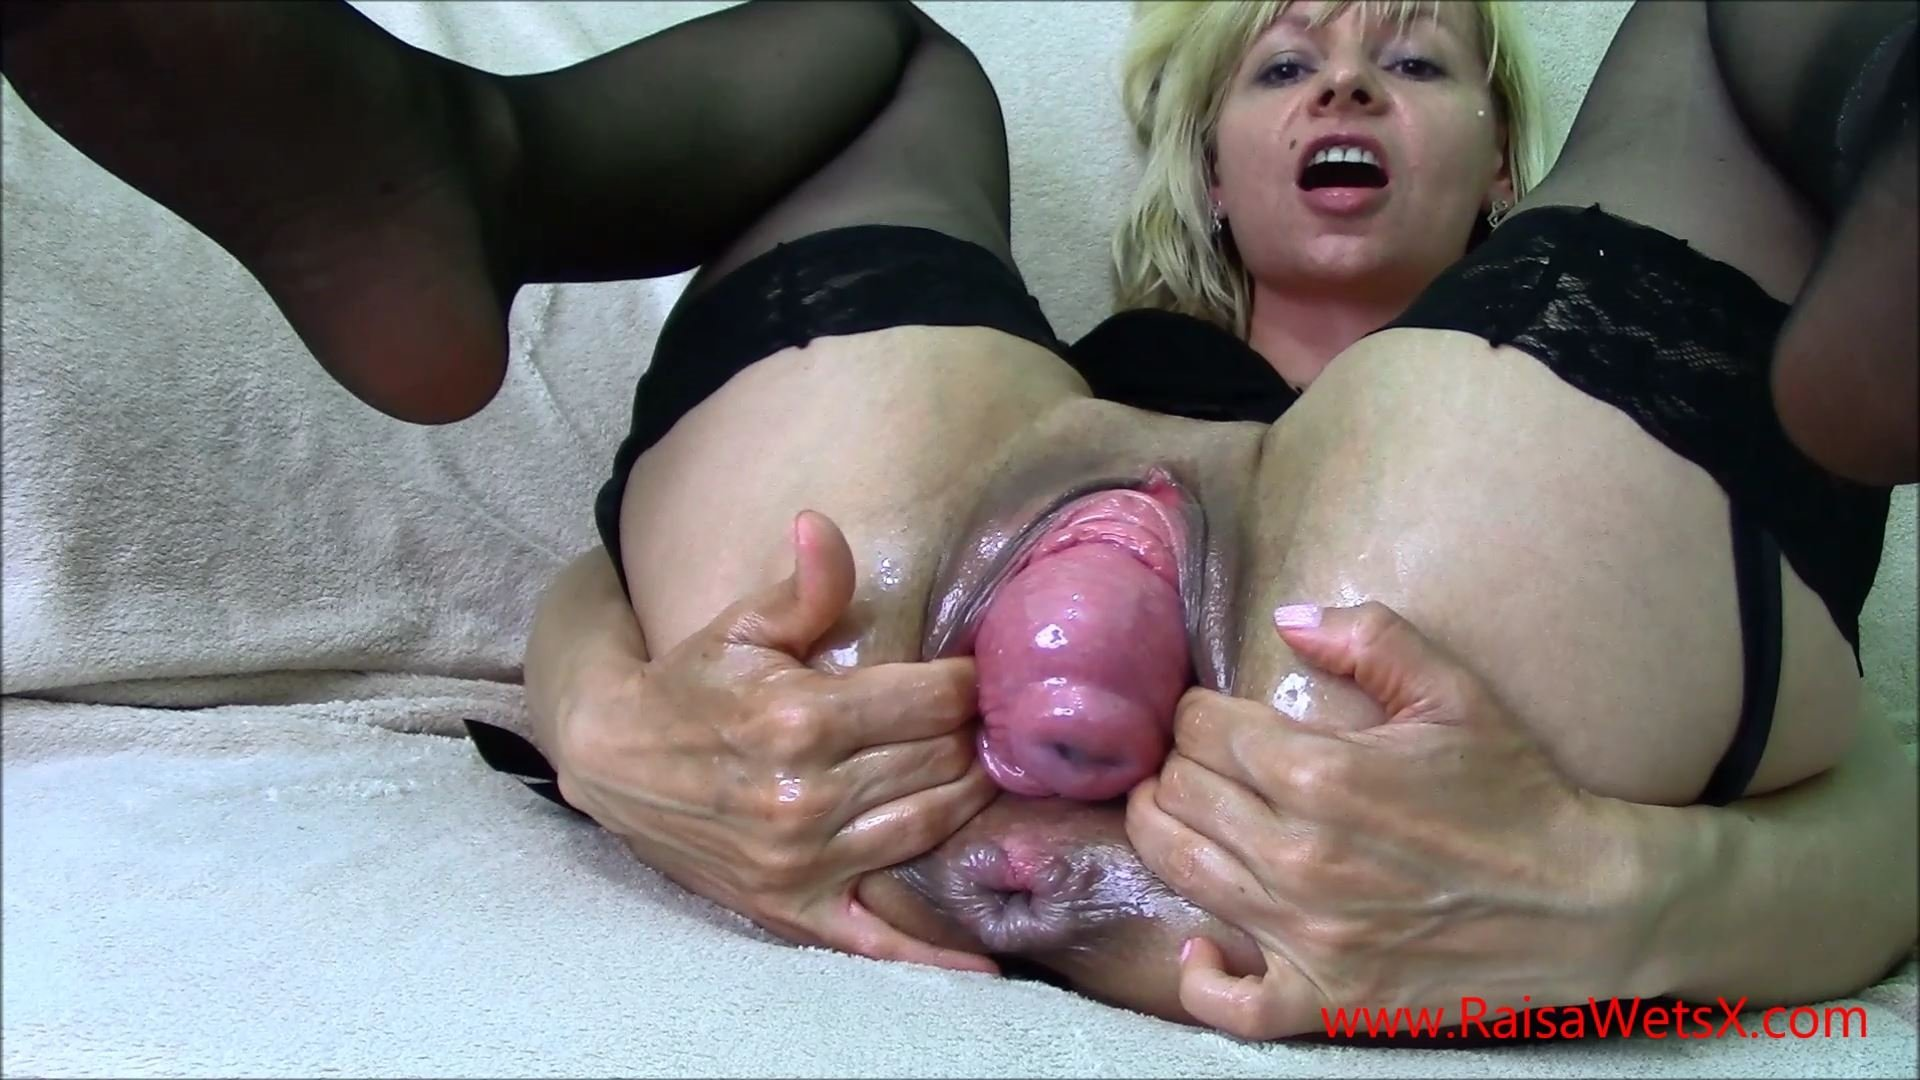 Awesome Granny Fisting And Squirting